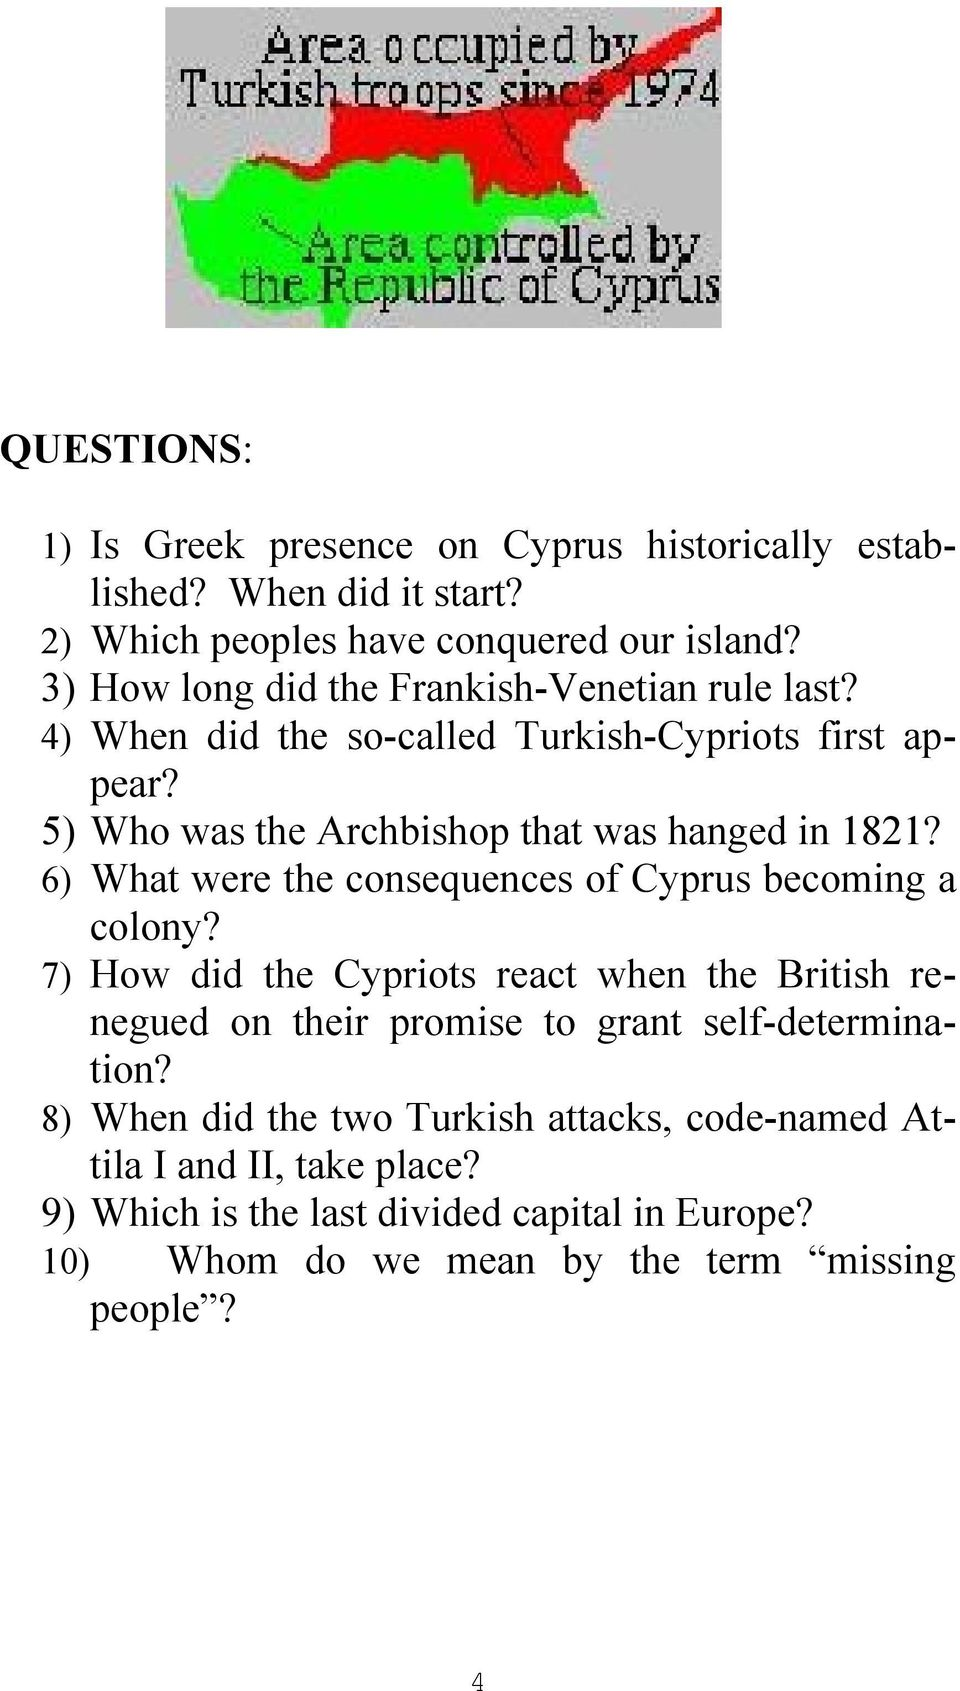 6) What were the consequences of Cyprus becoming a colony?